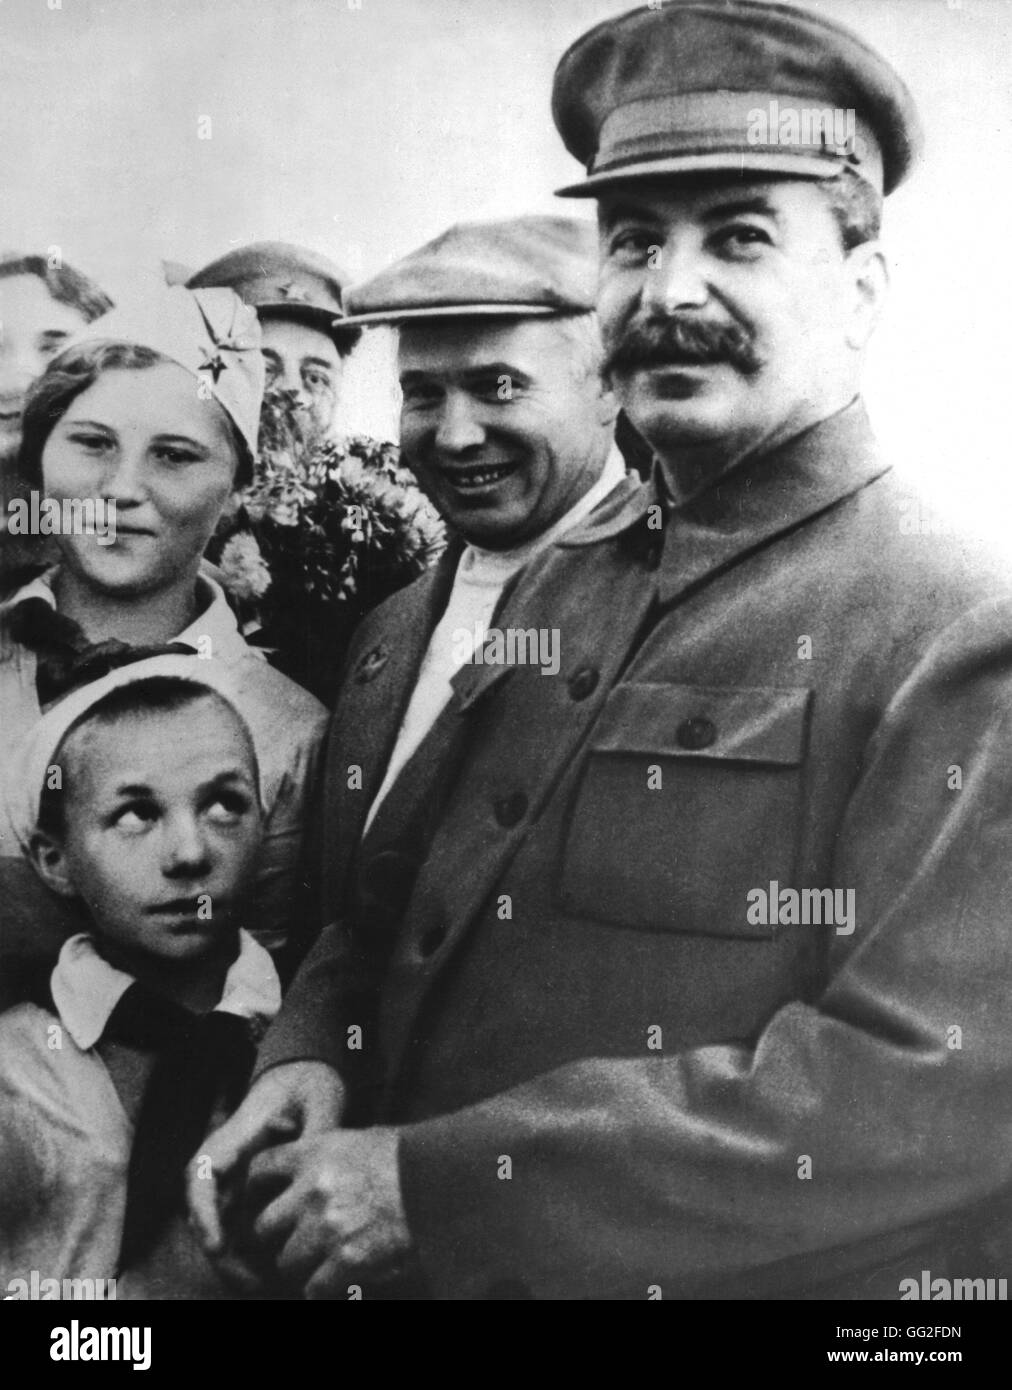 Khrushchev and Stalin during a formal ceremony 1937 USSR - Stock Image